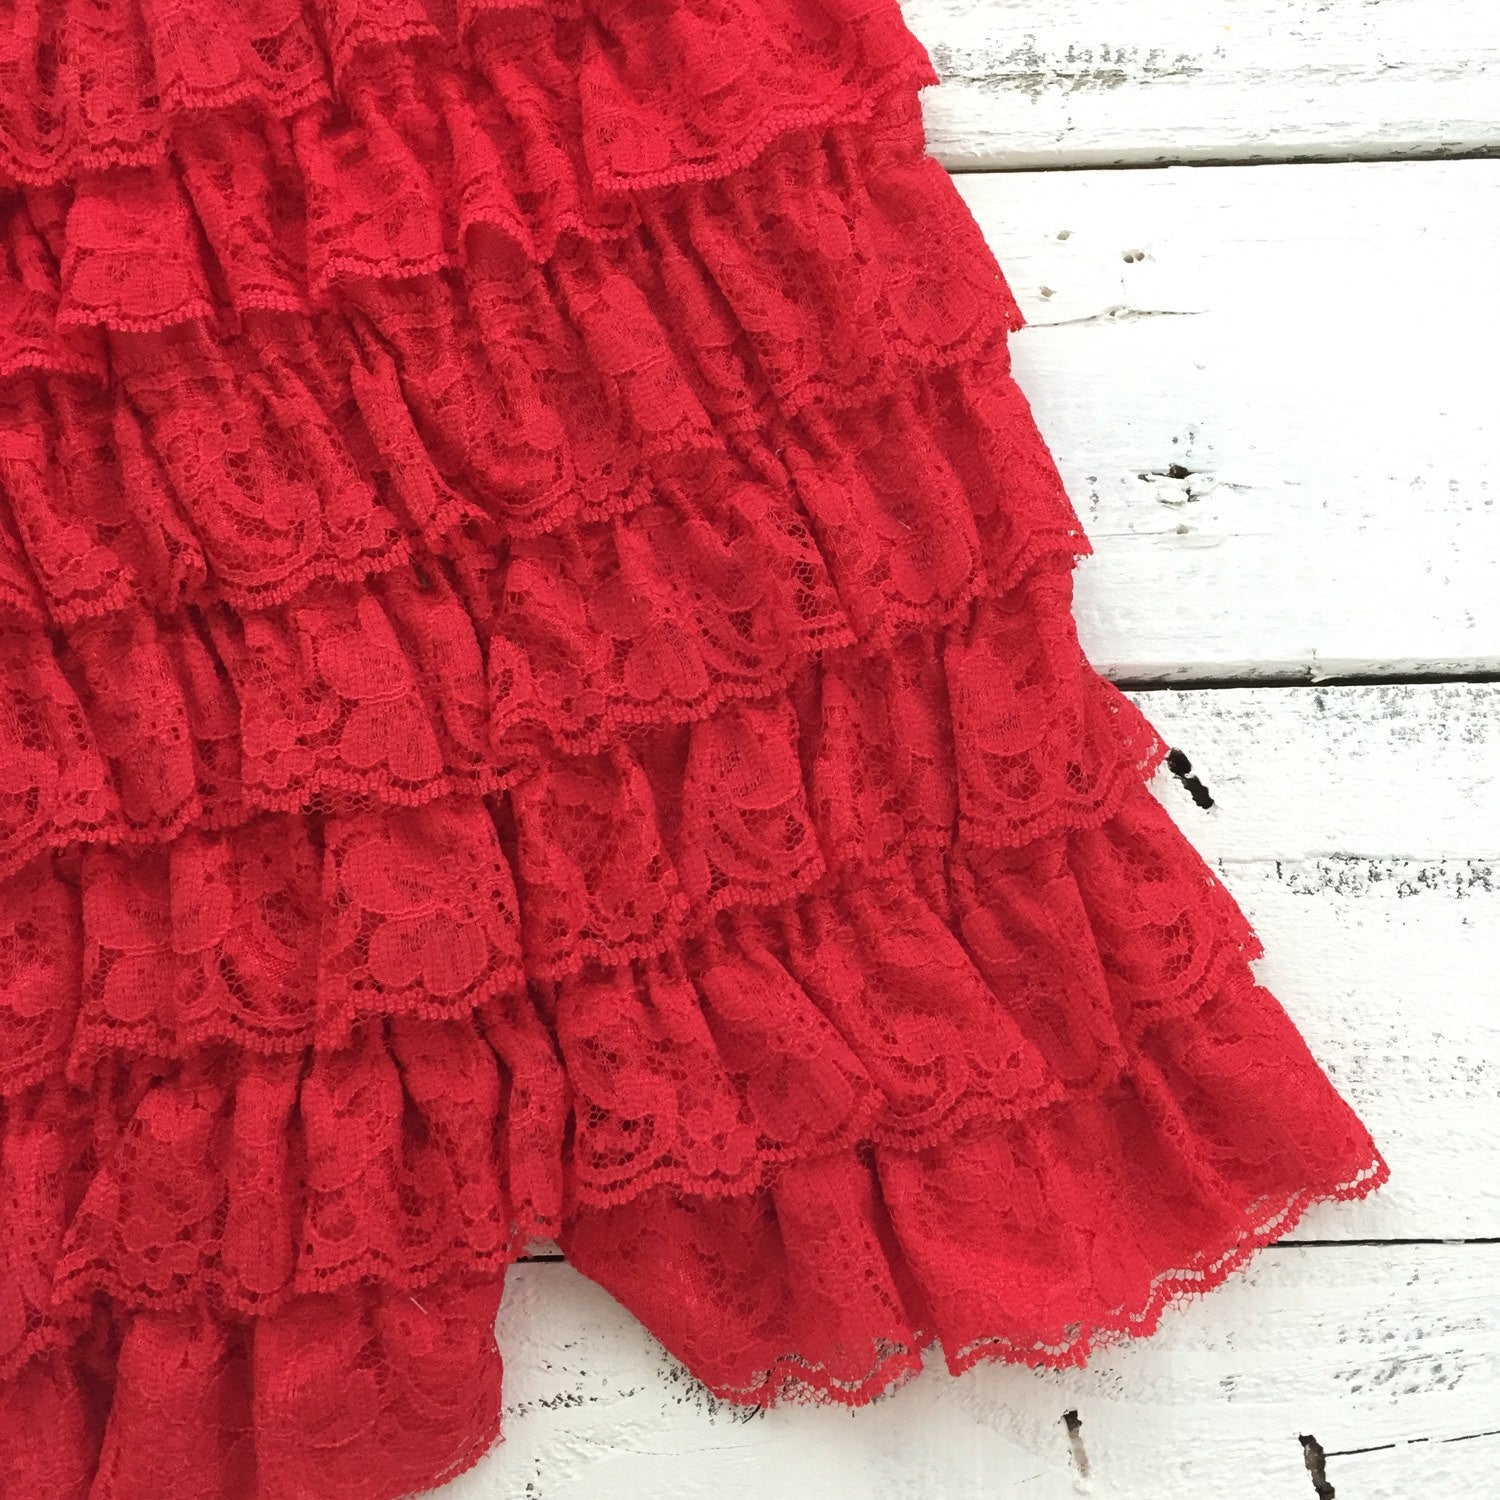 7a96d1284807a Lace Petti Romper - Embellished Christmas Red Lace Petti Romper and  matching headband